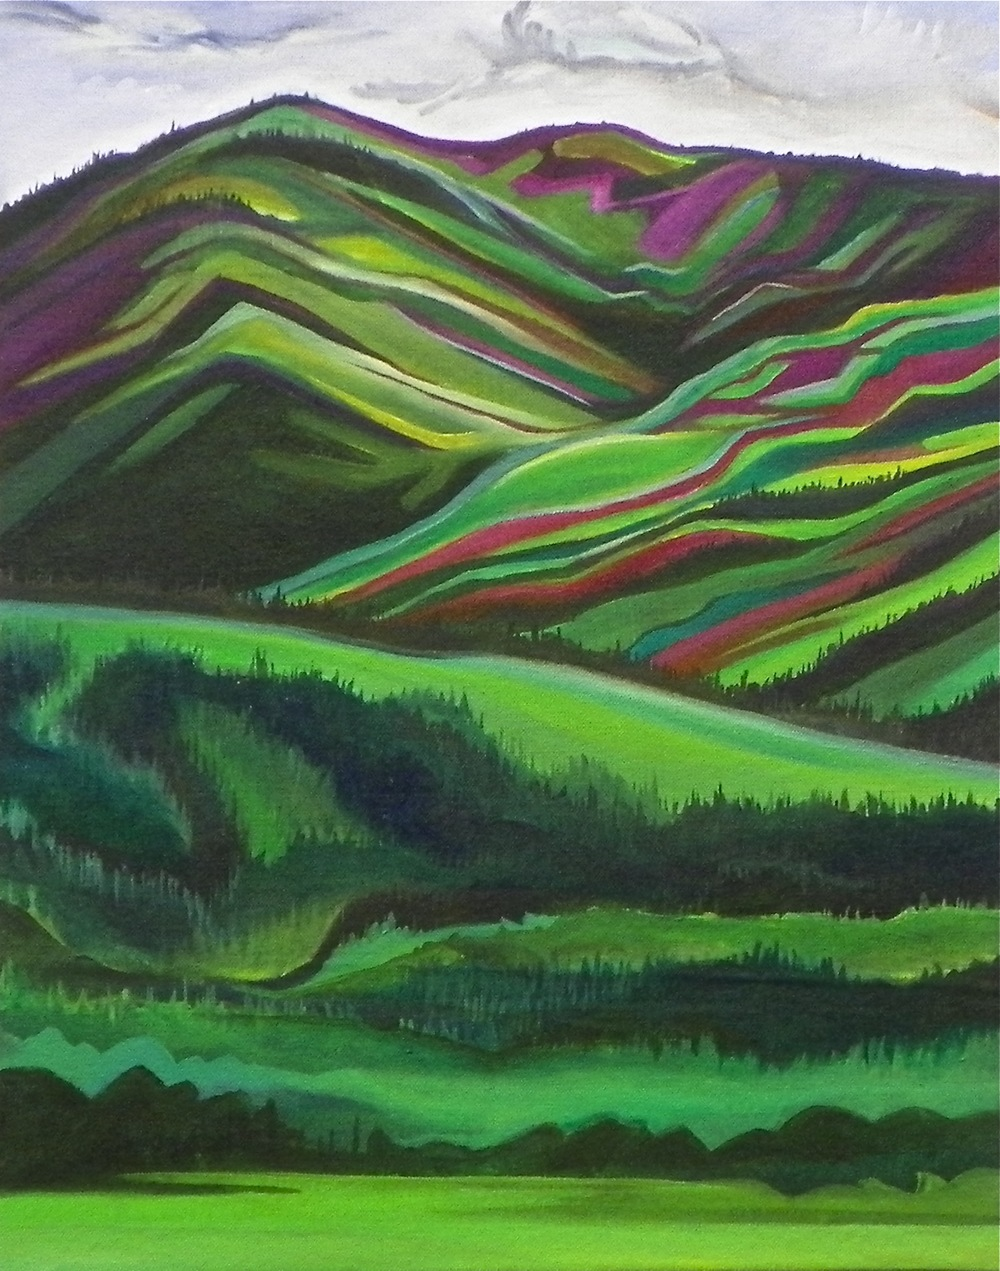 "Across the Valley -   Acrylic   on canvas - 20"" x 16"" - 2012"